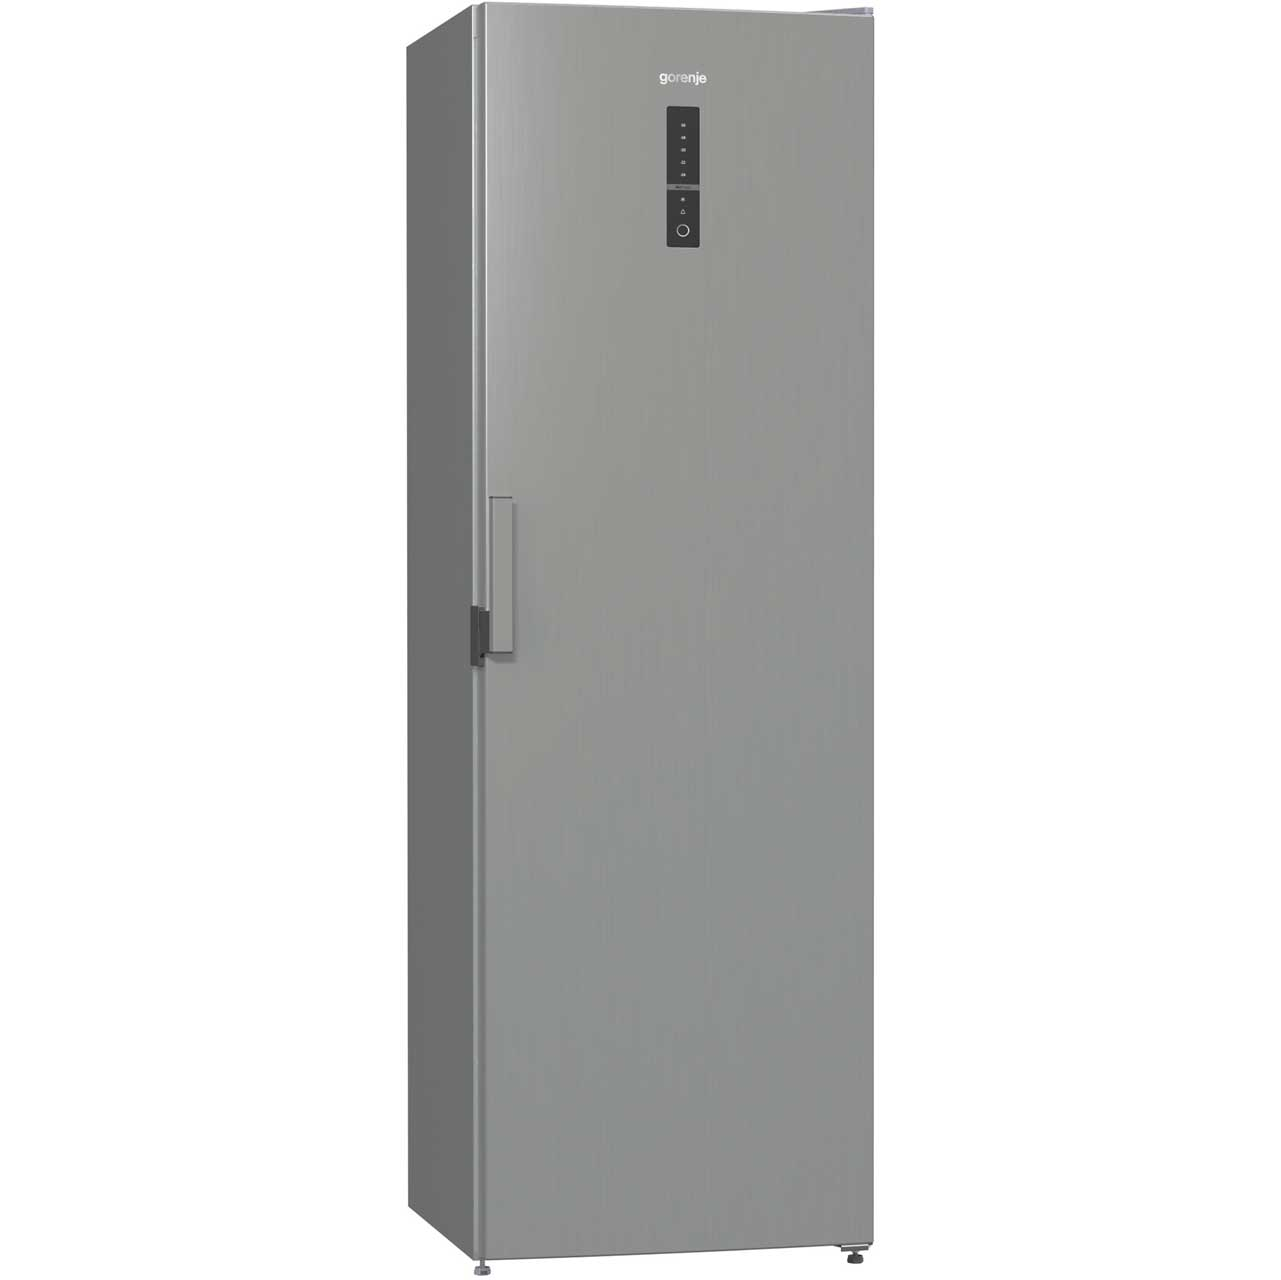 Gorenje FN6192PXUK Upright Freezer - Stainless Steel